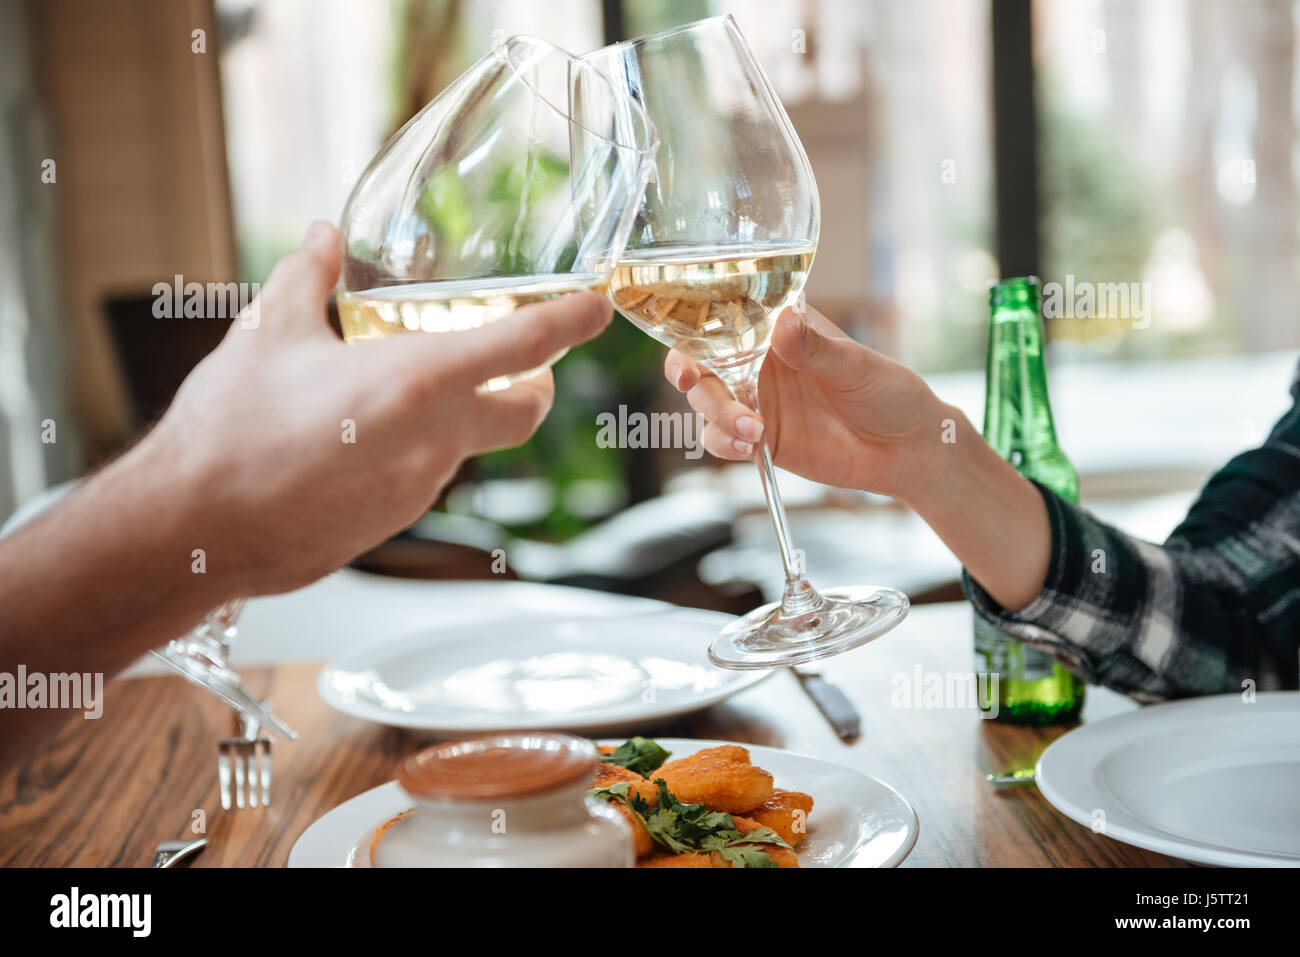 Close up portrait of a female and male hands toasting with glasses of white wine over table - Stock Image